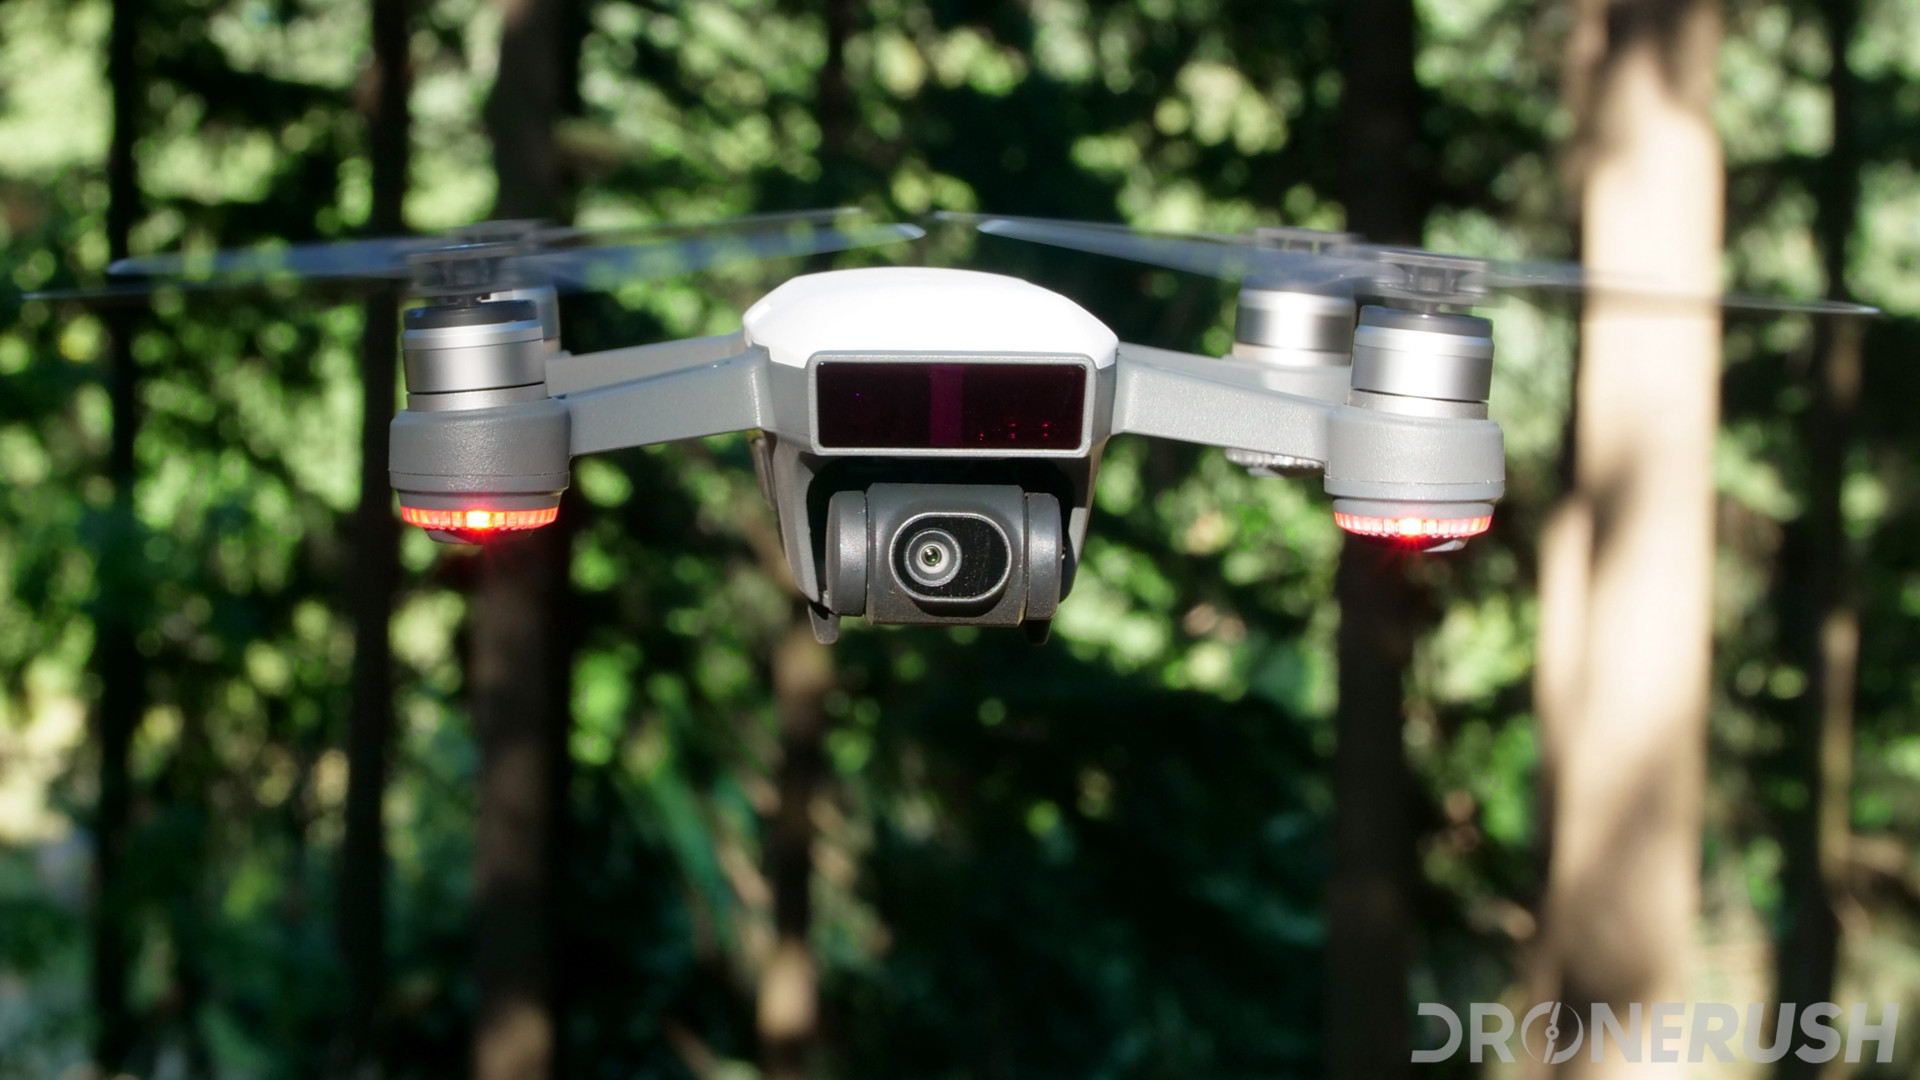 Review: How good is the DJI Spark camera - Drone Rush